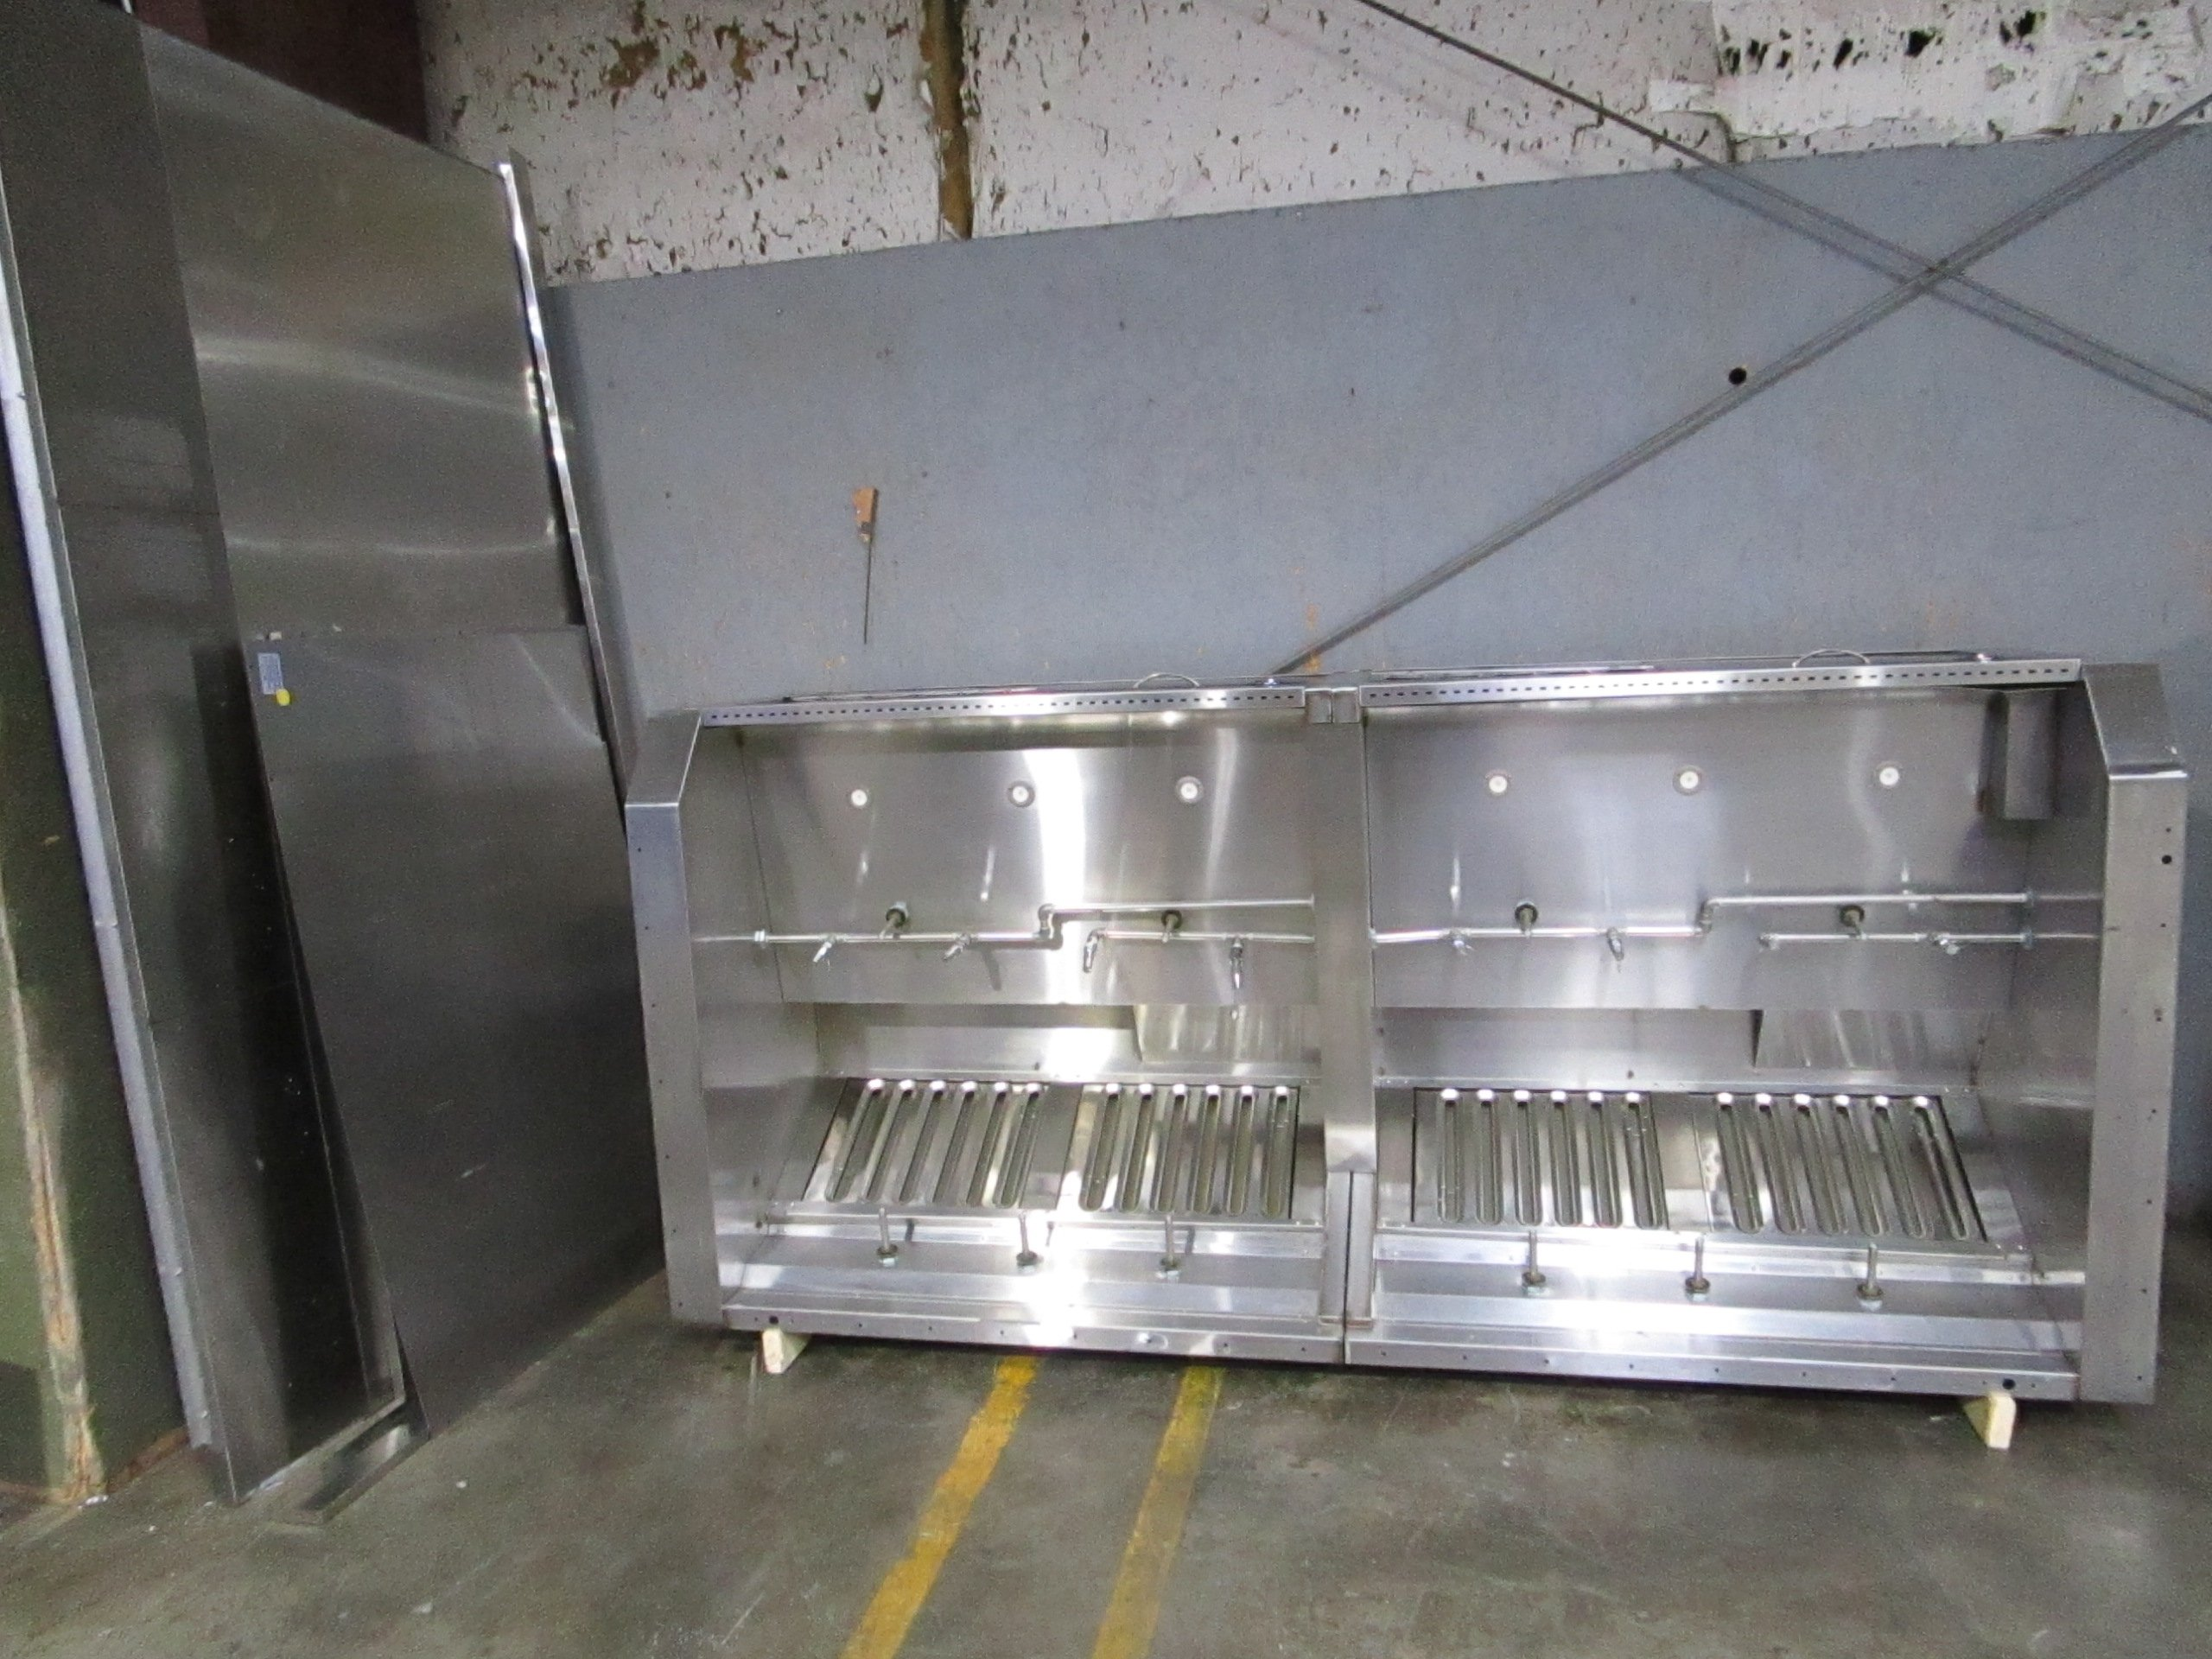 wells wvu96 109 ventless exhaust hood with ansul system w frame panels